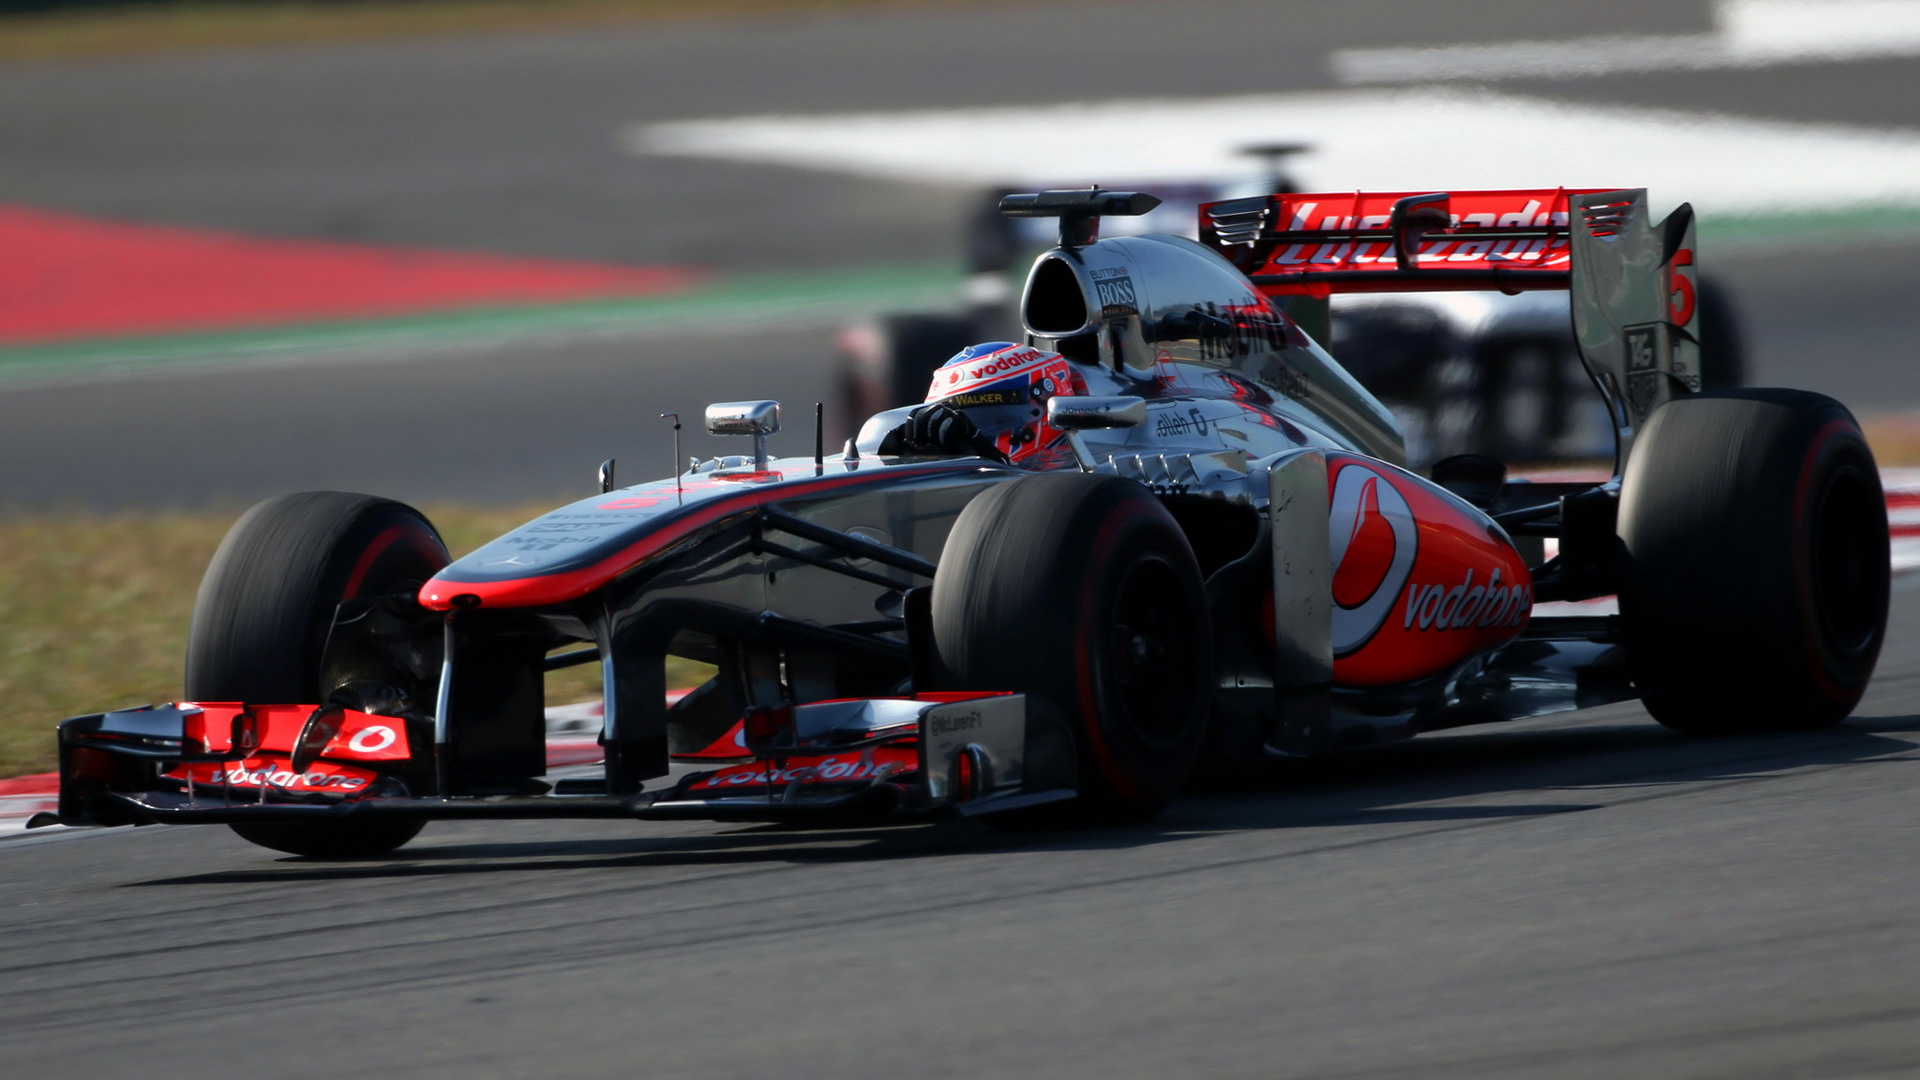 2013 McLaren Mercedes MP4-28 - Wallpapers and HD Images ...